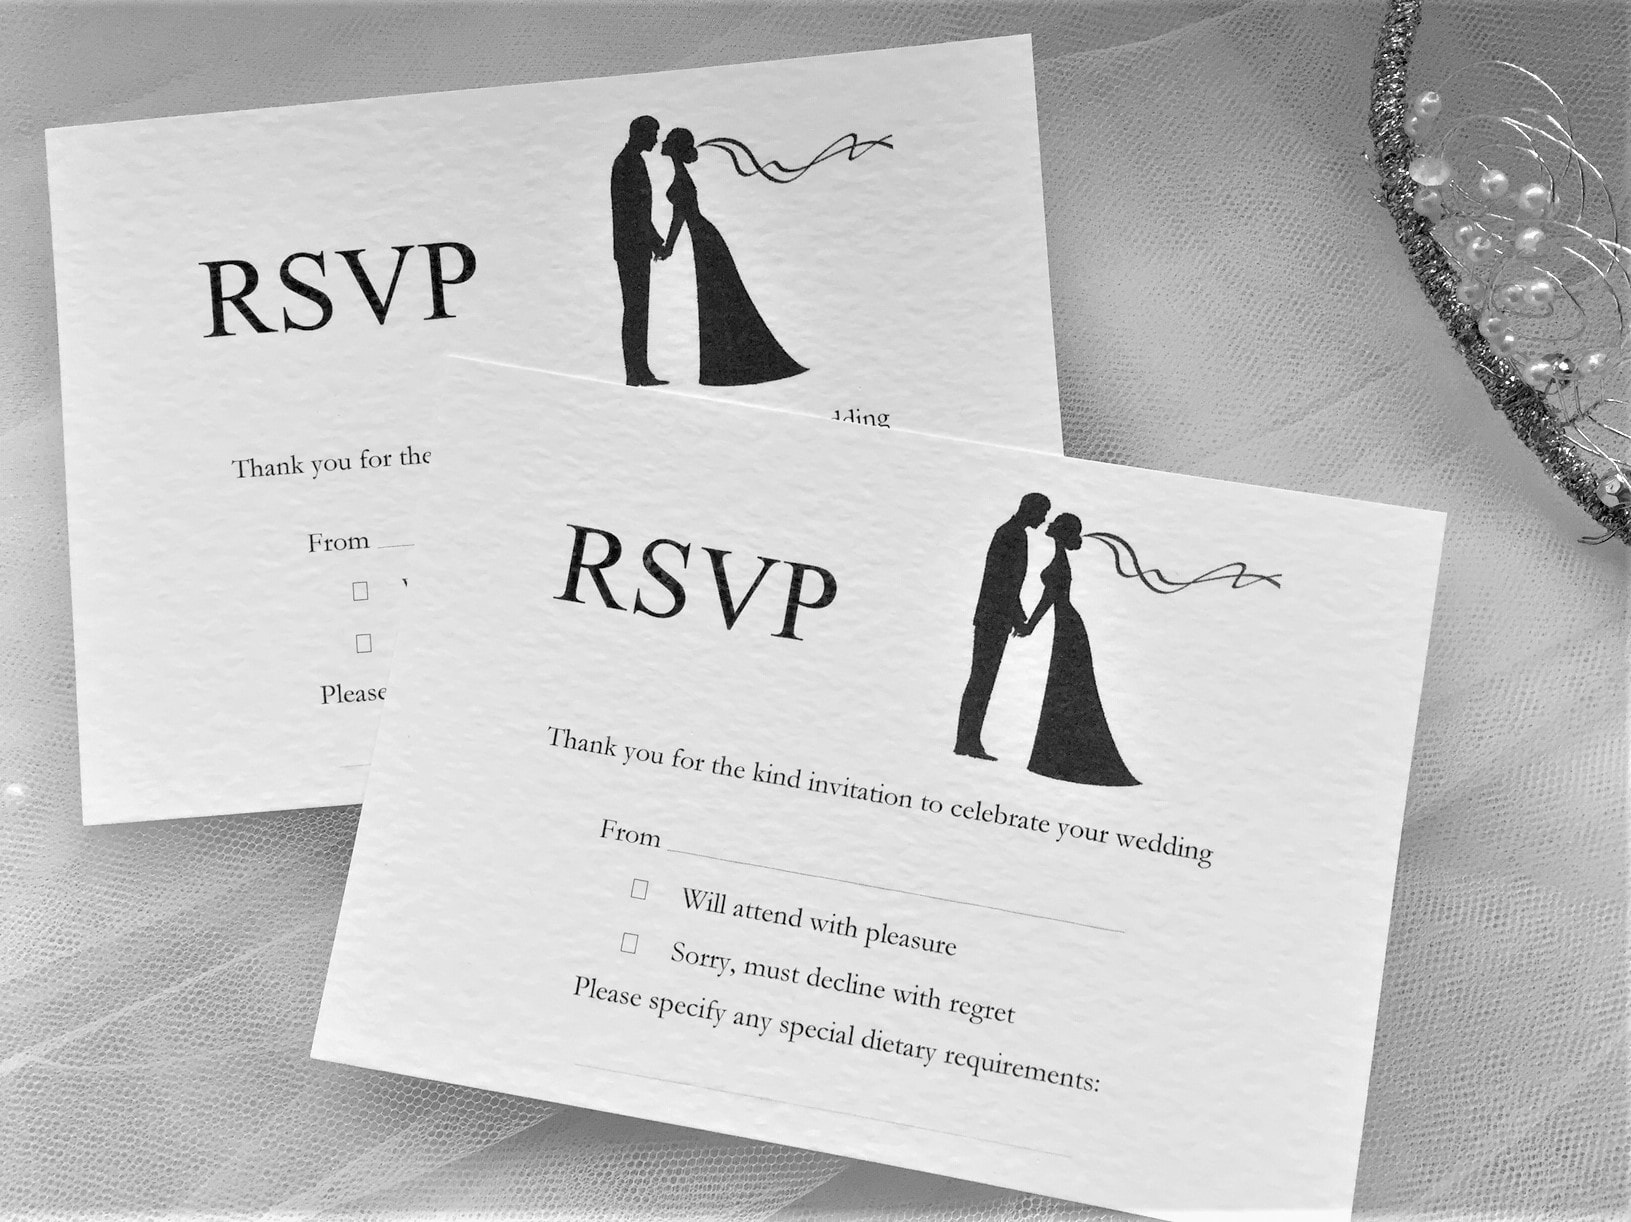 beautiful wedding invitations with rsvp cards included or card size